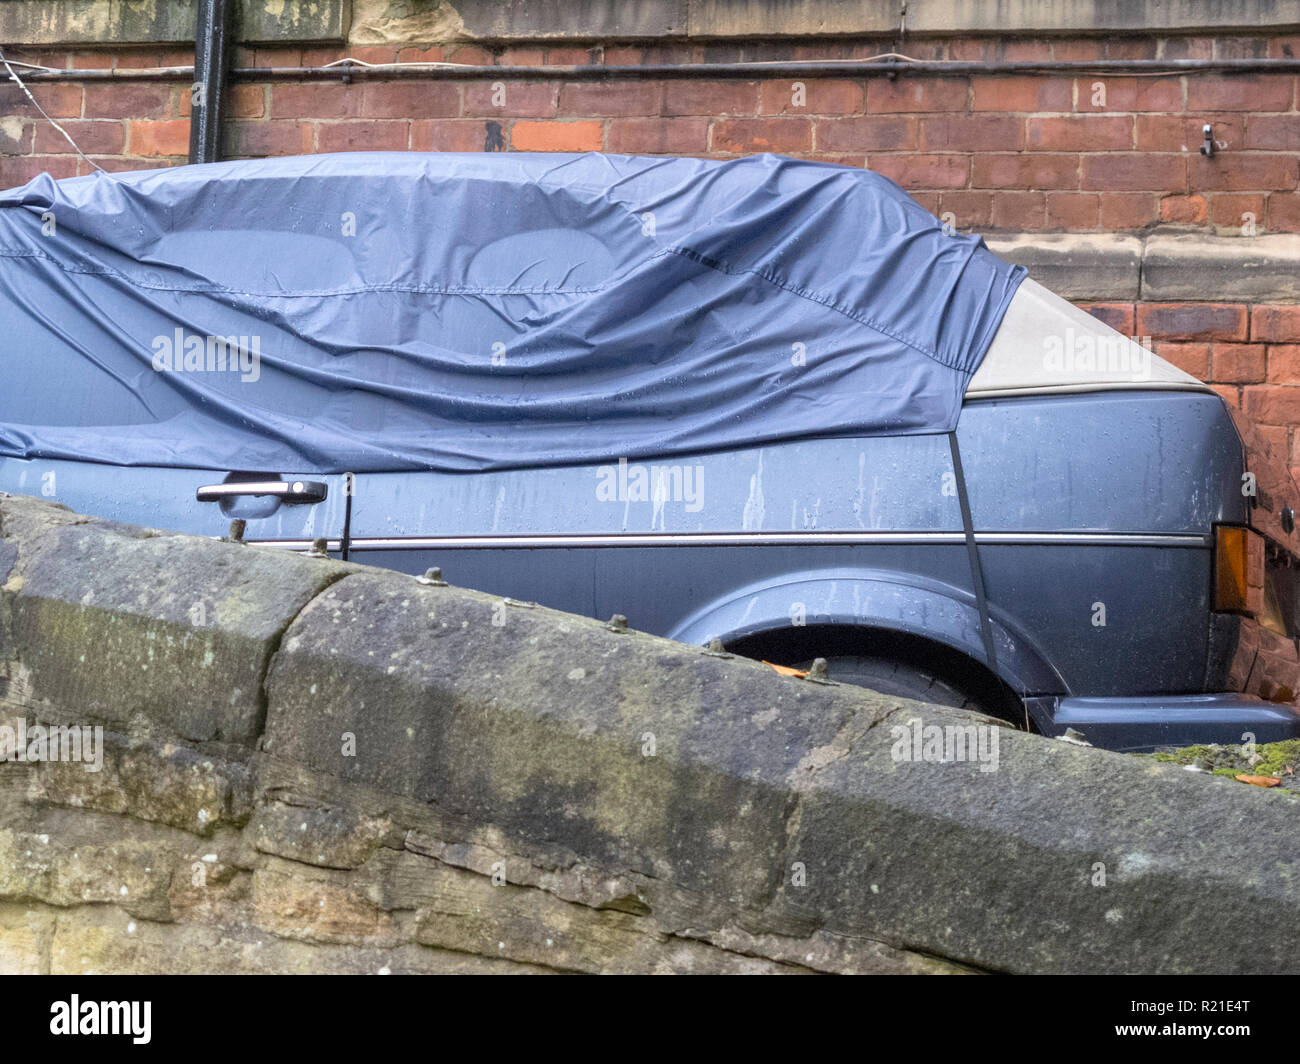 A blue VW Golf MK2 convertible hatchback car with a cover over it, parked next an old run down house in Durham City, County Durham, England, UK - Stock Image